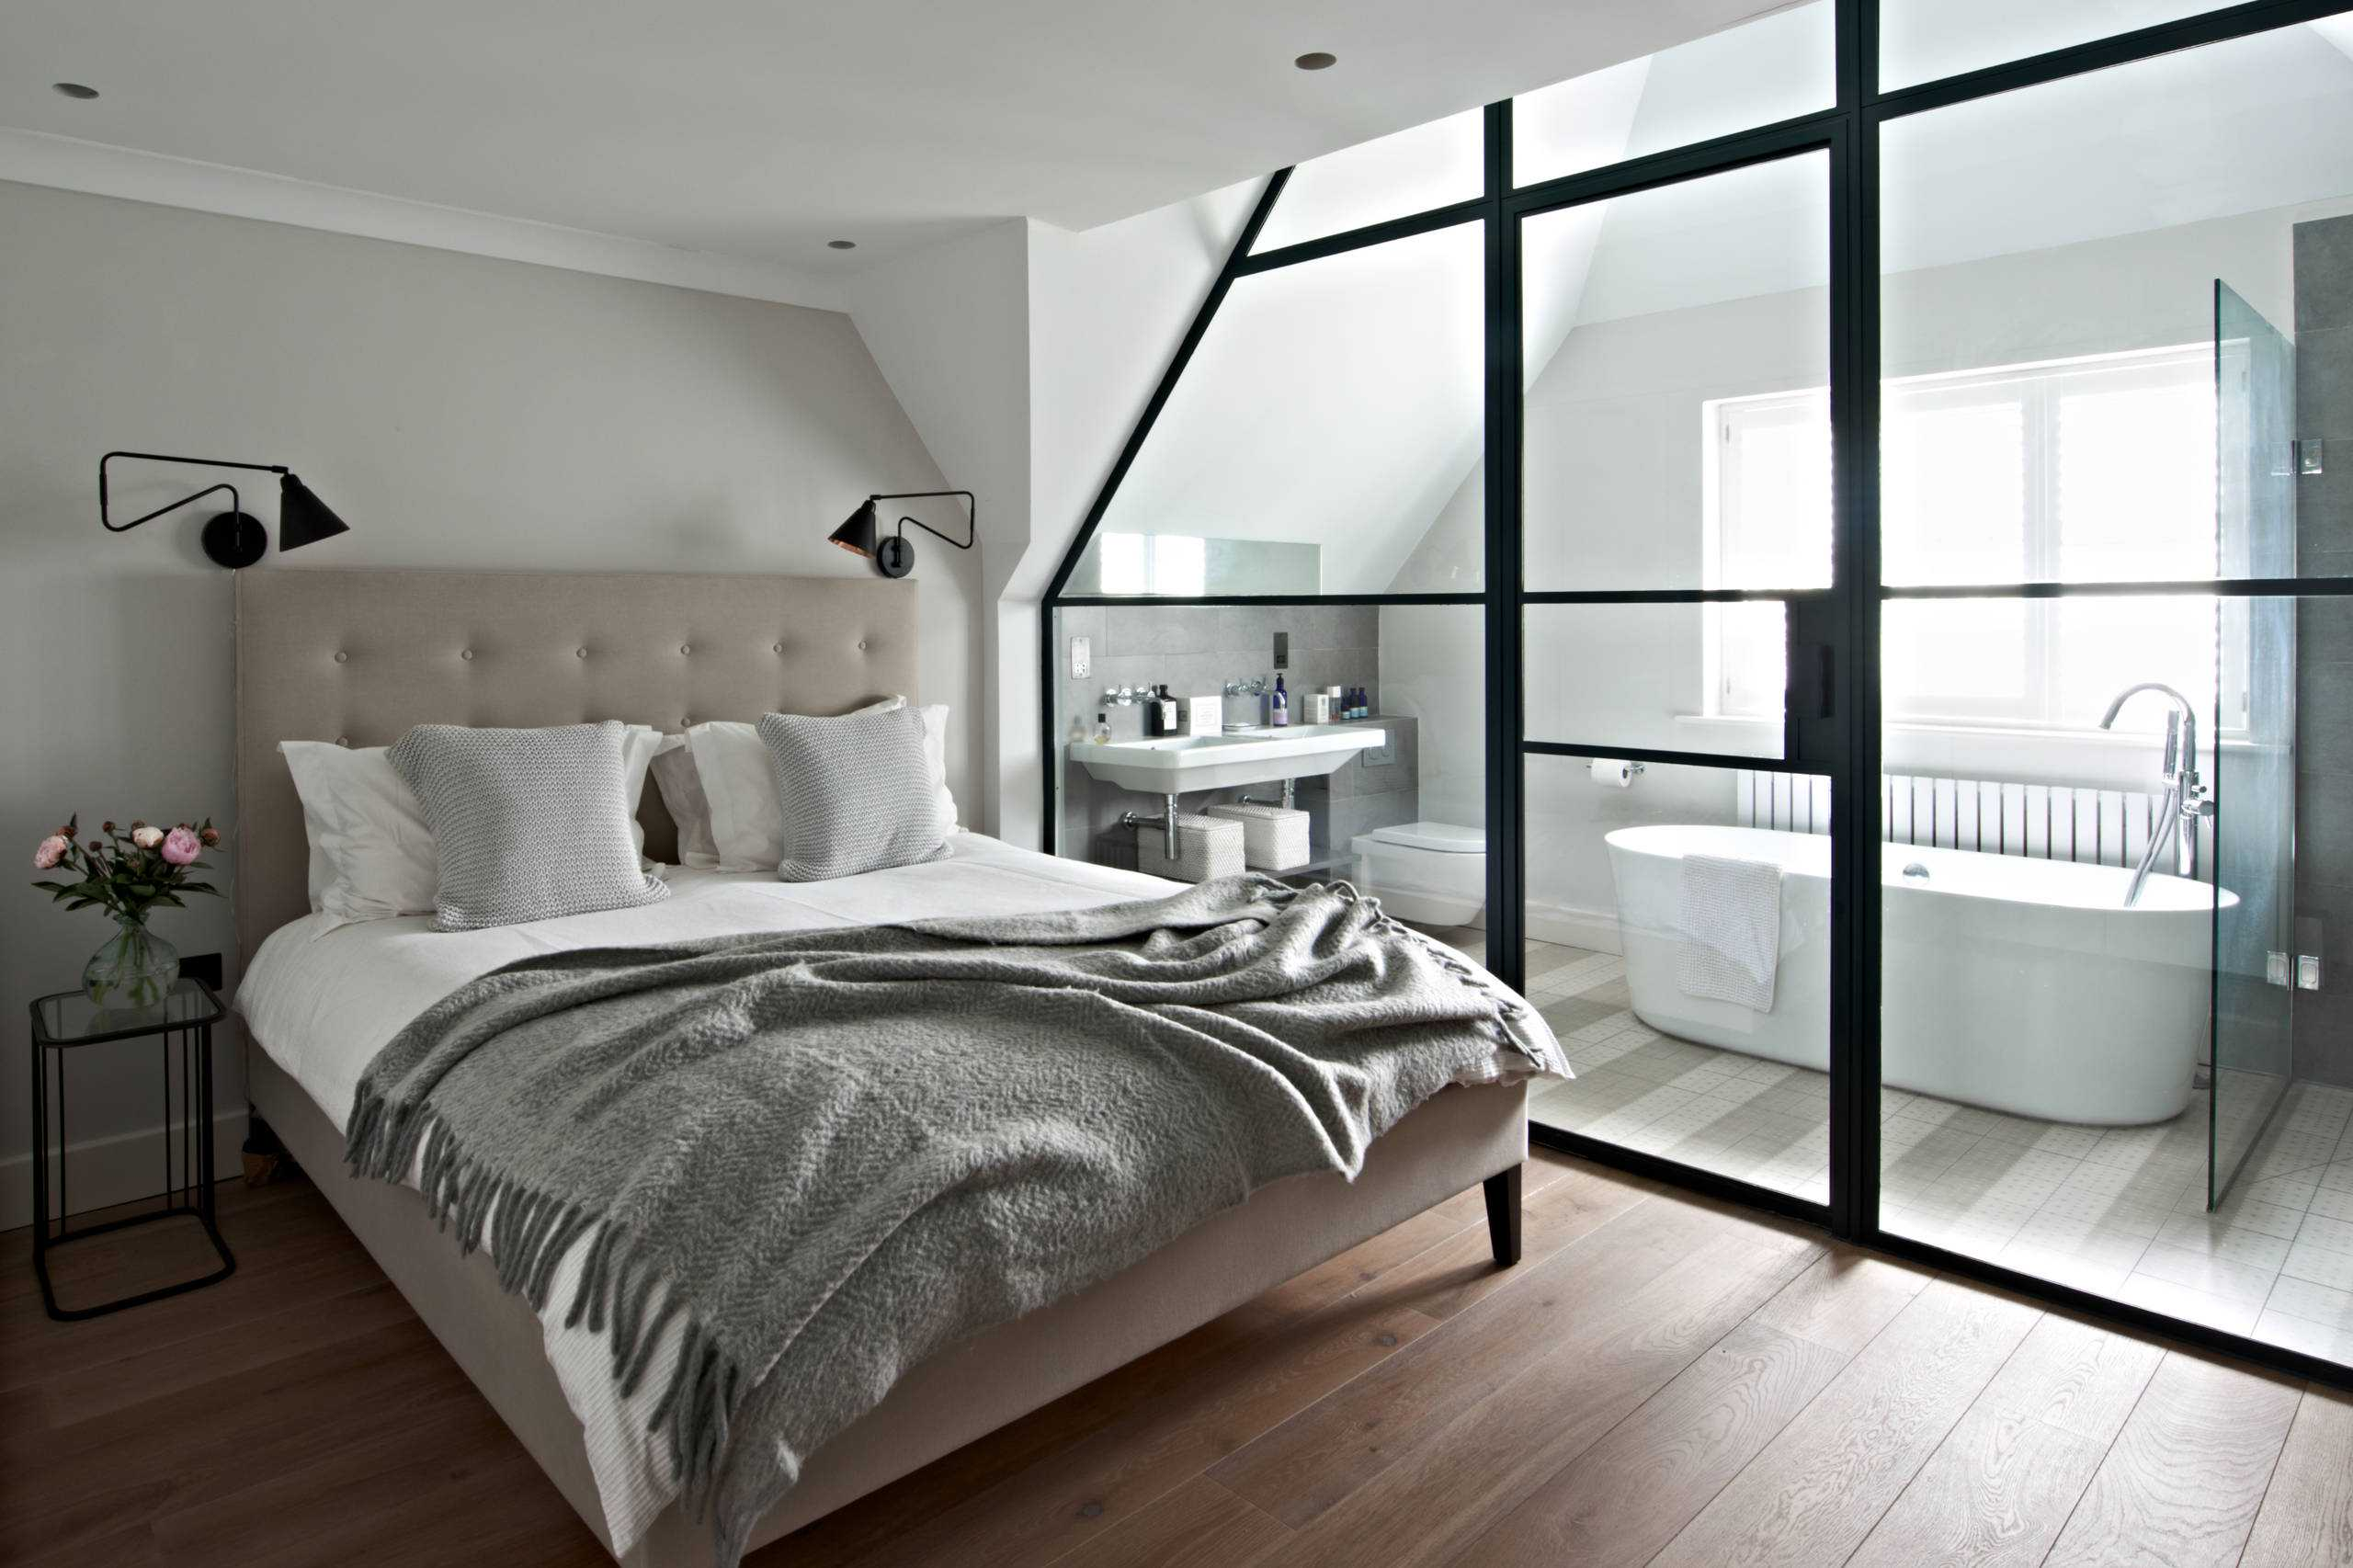 modern contemporary bedroom ideas 16 luxurious modern bedroom designs flickering with elegance 16352